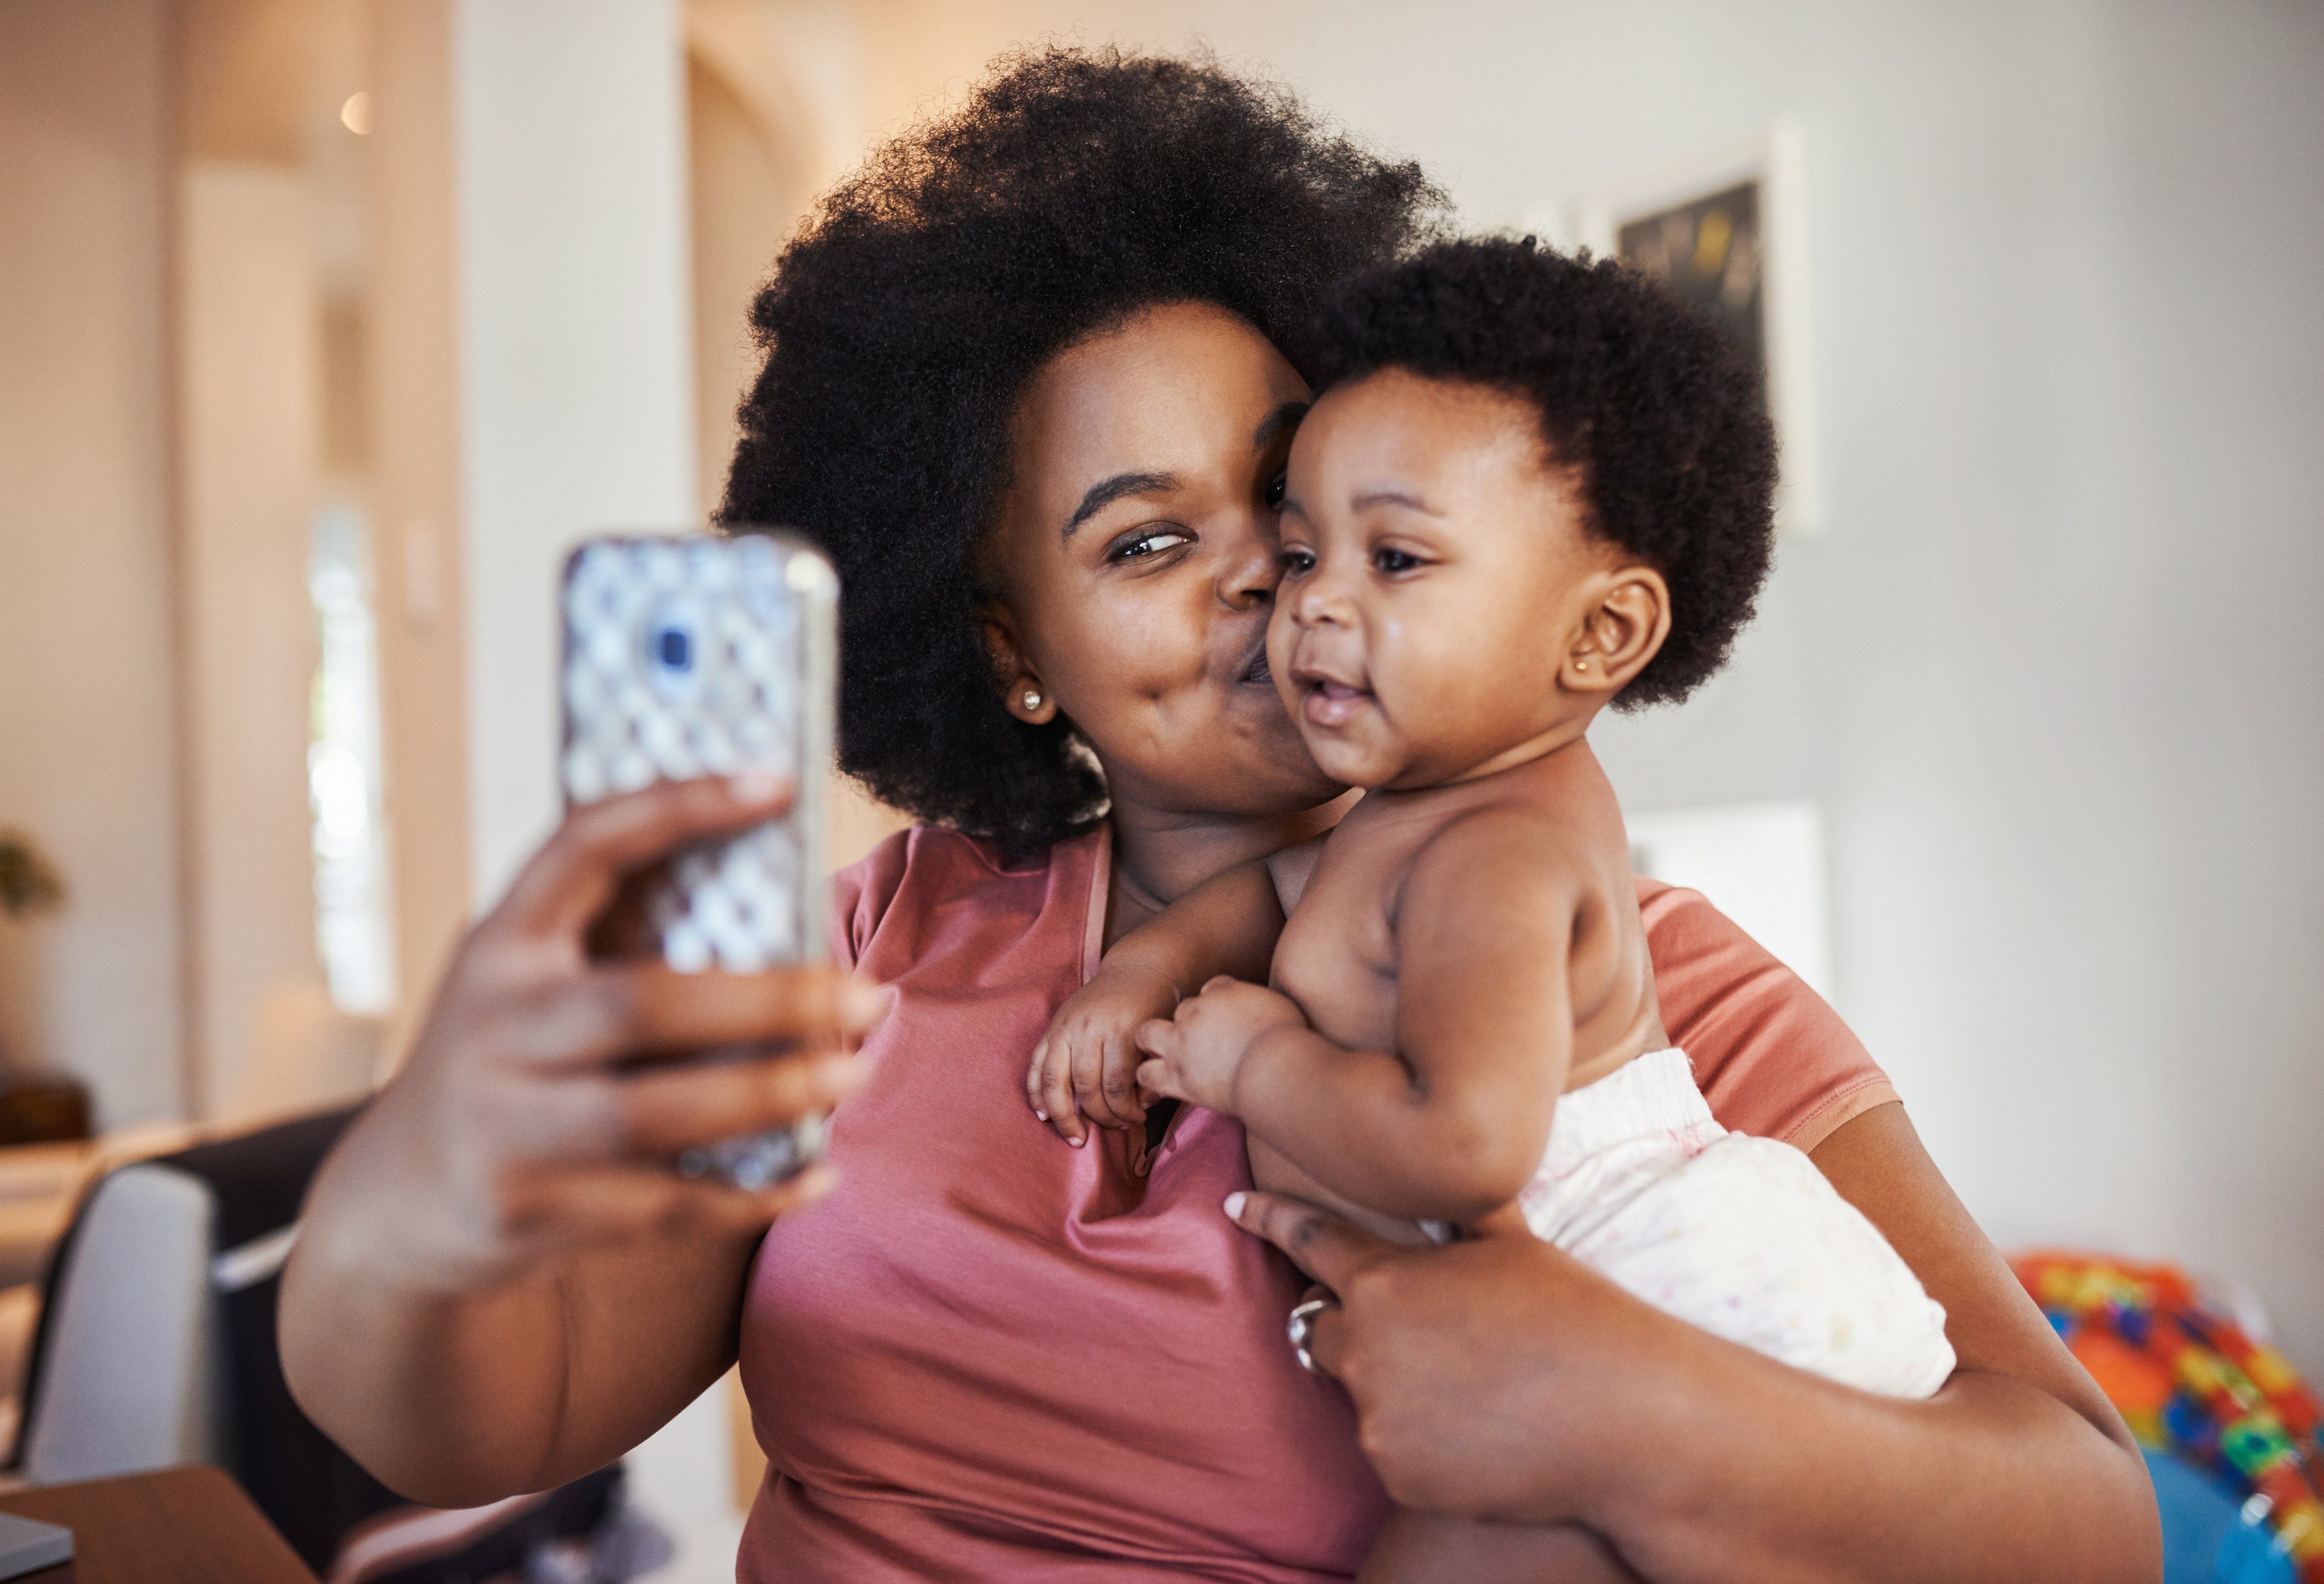 selfie mom and baby